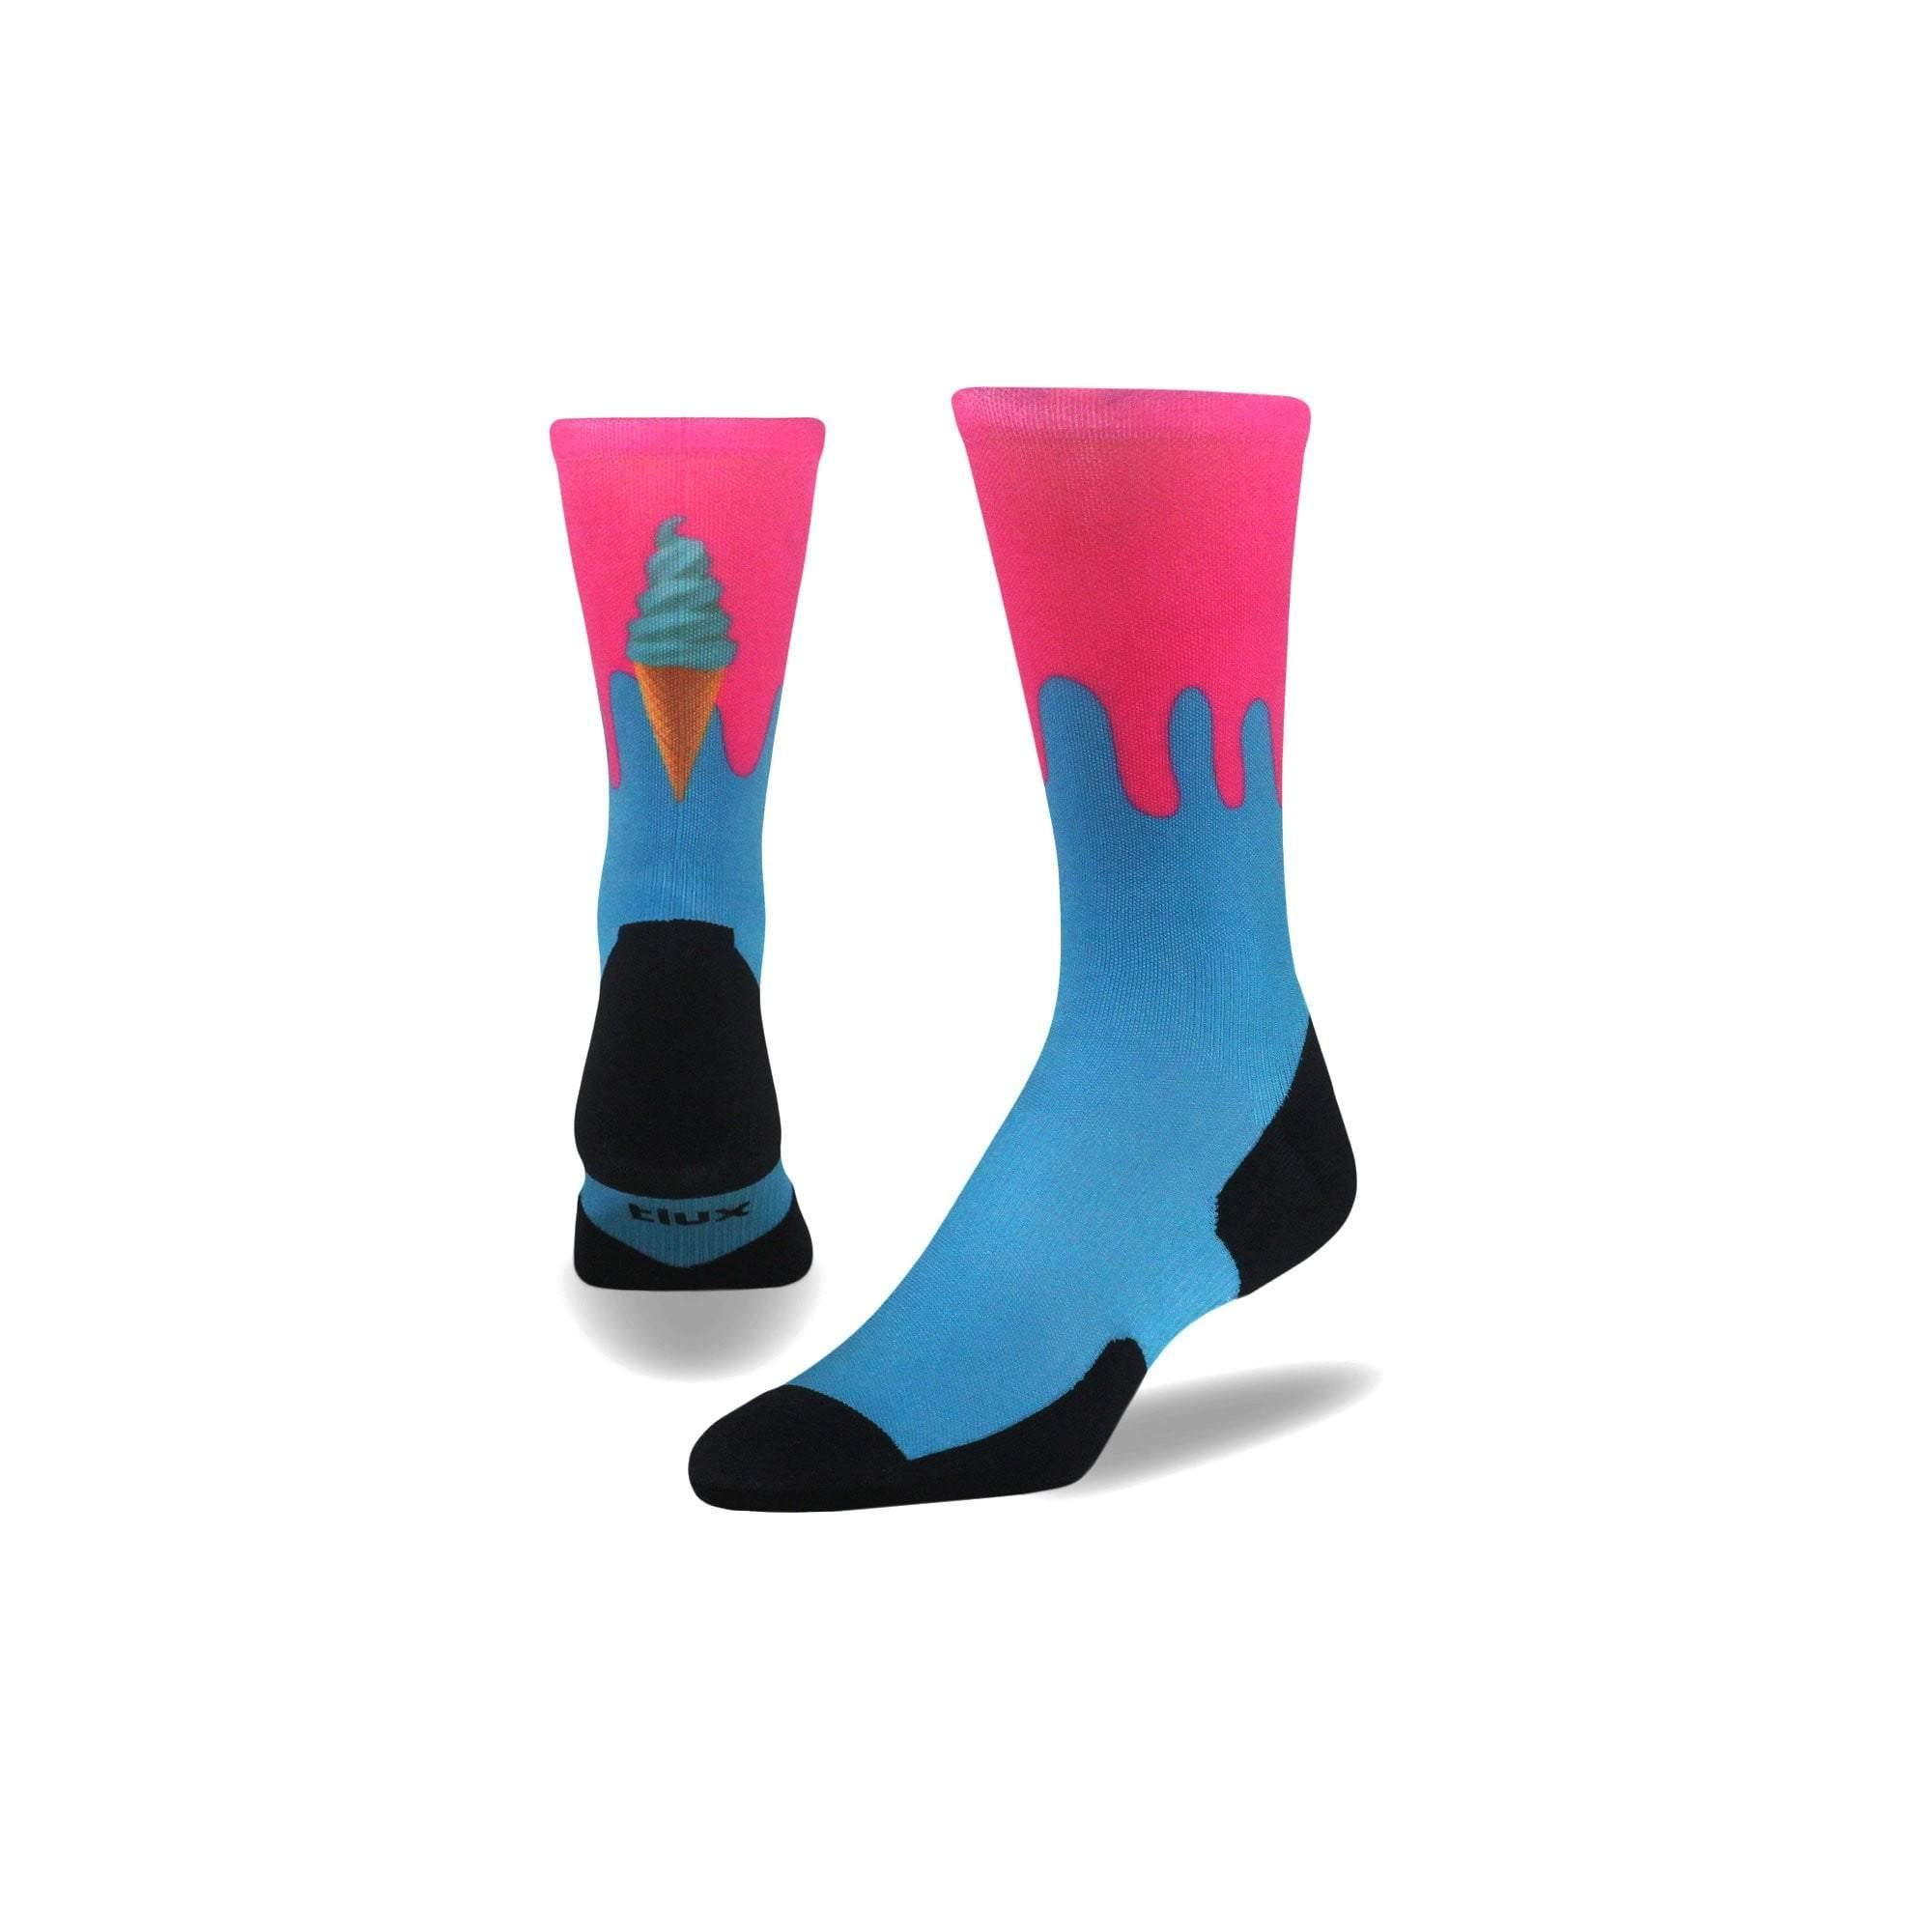 Drip Run Crew - Graduated Compression Socks